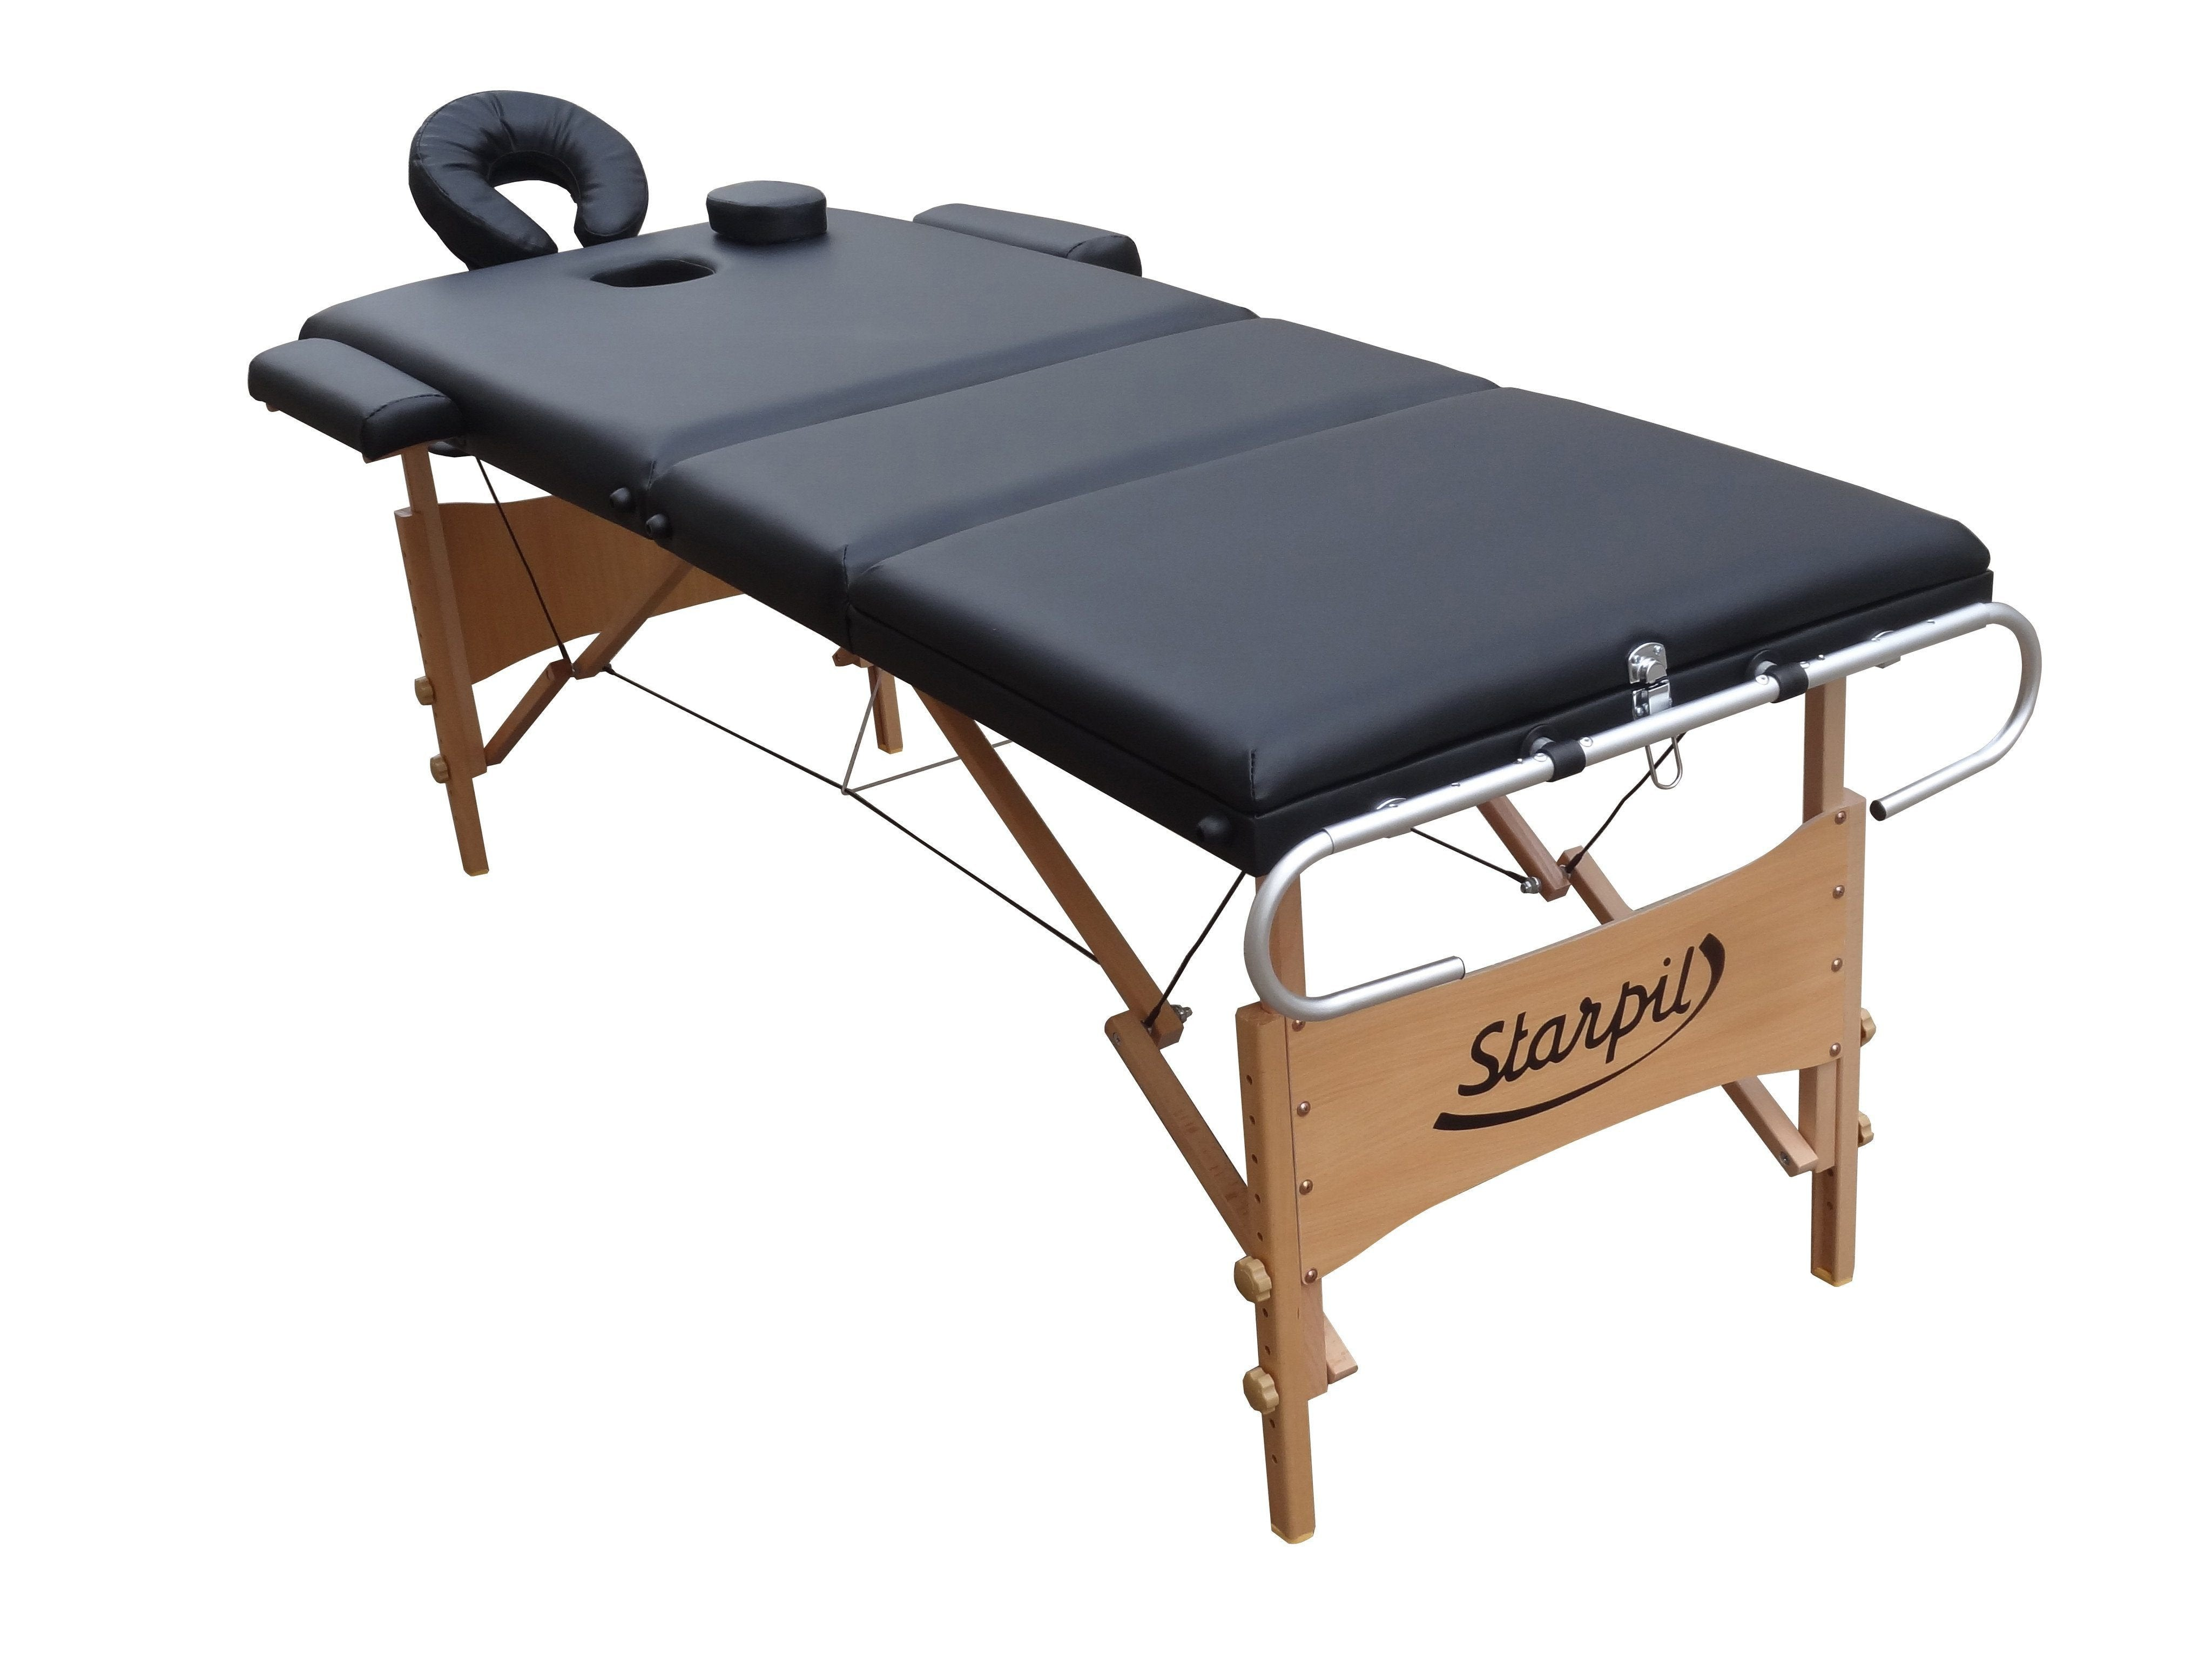 Portable Folding Spa Bed By Starpil